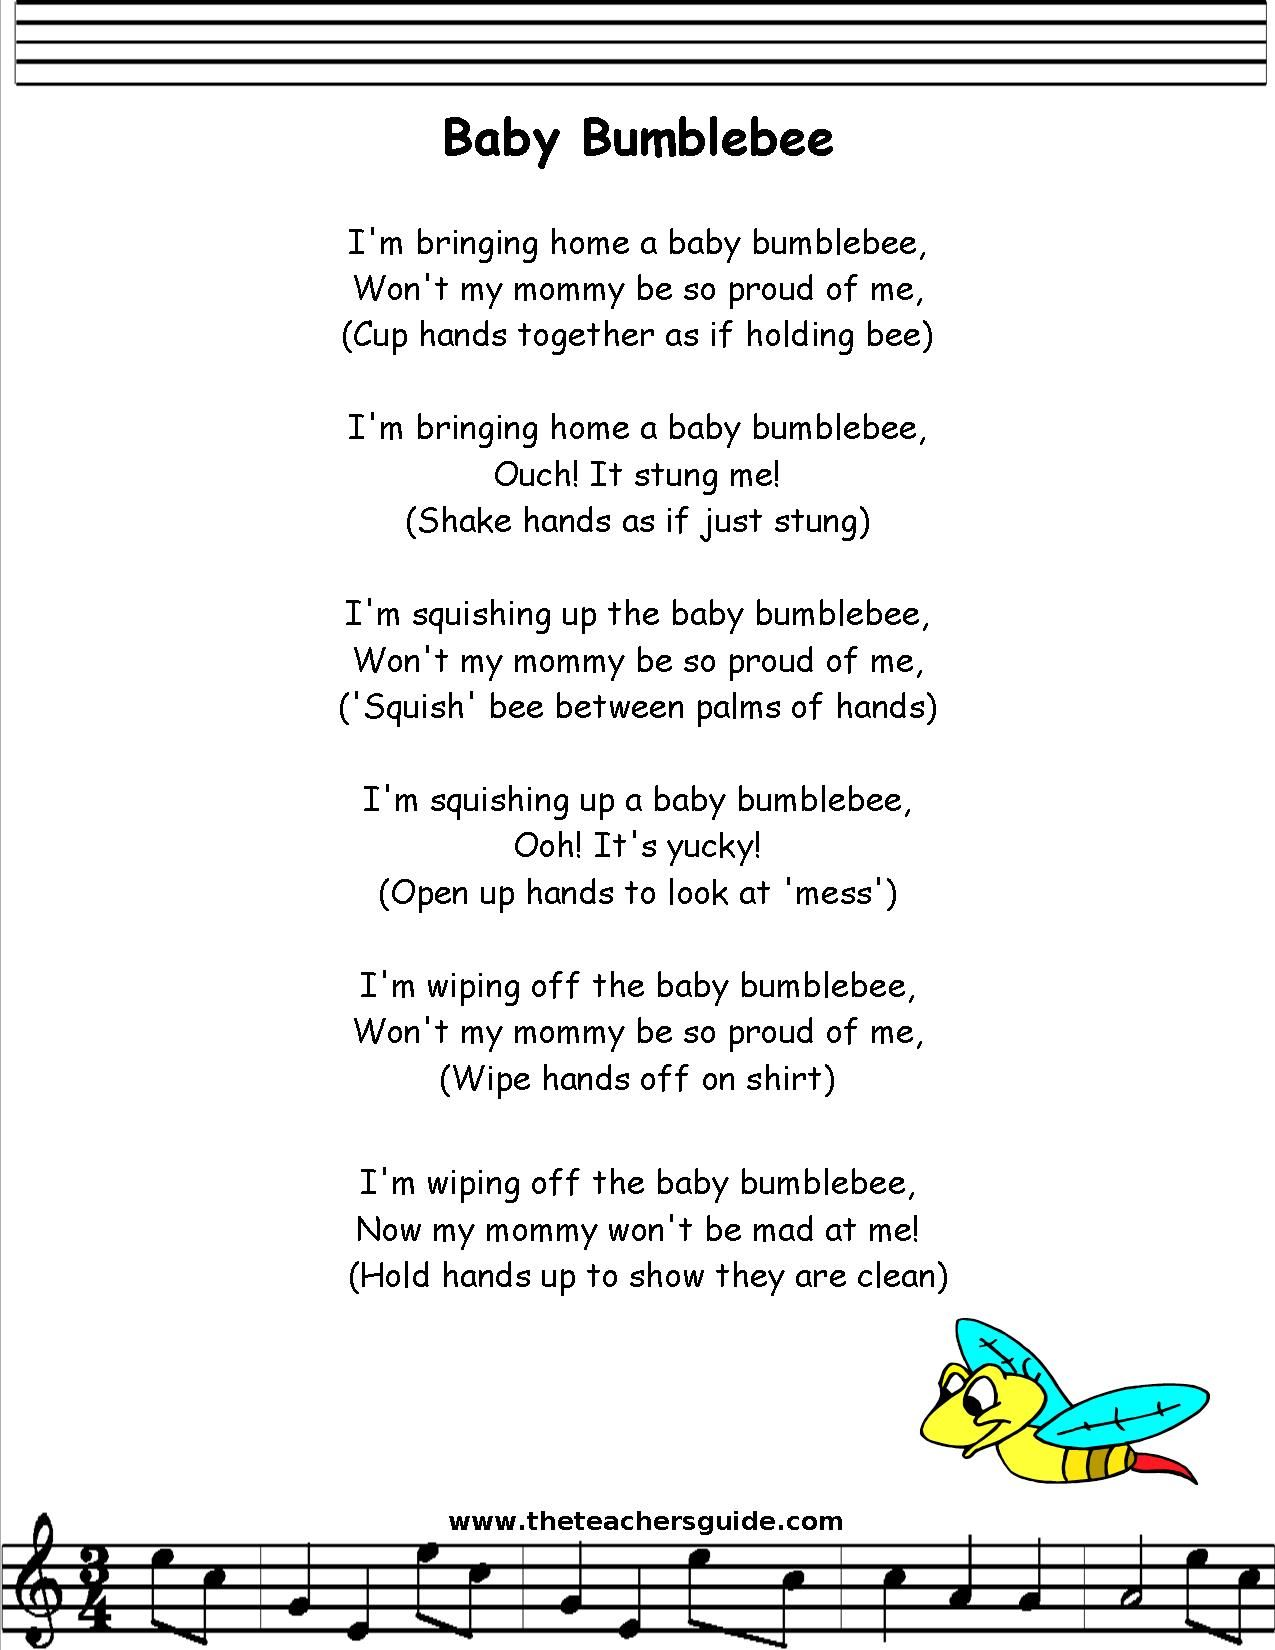 Baby Children Nursery Rhyme Song Babybumble Bee Lyrics Printout Kids Stuff Pinterest